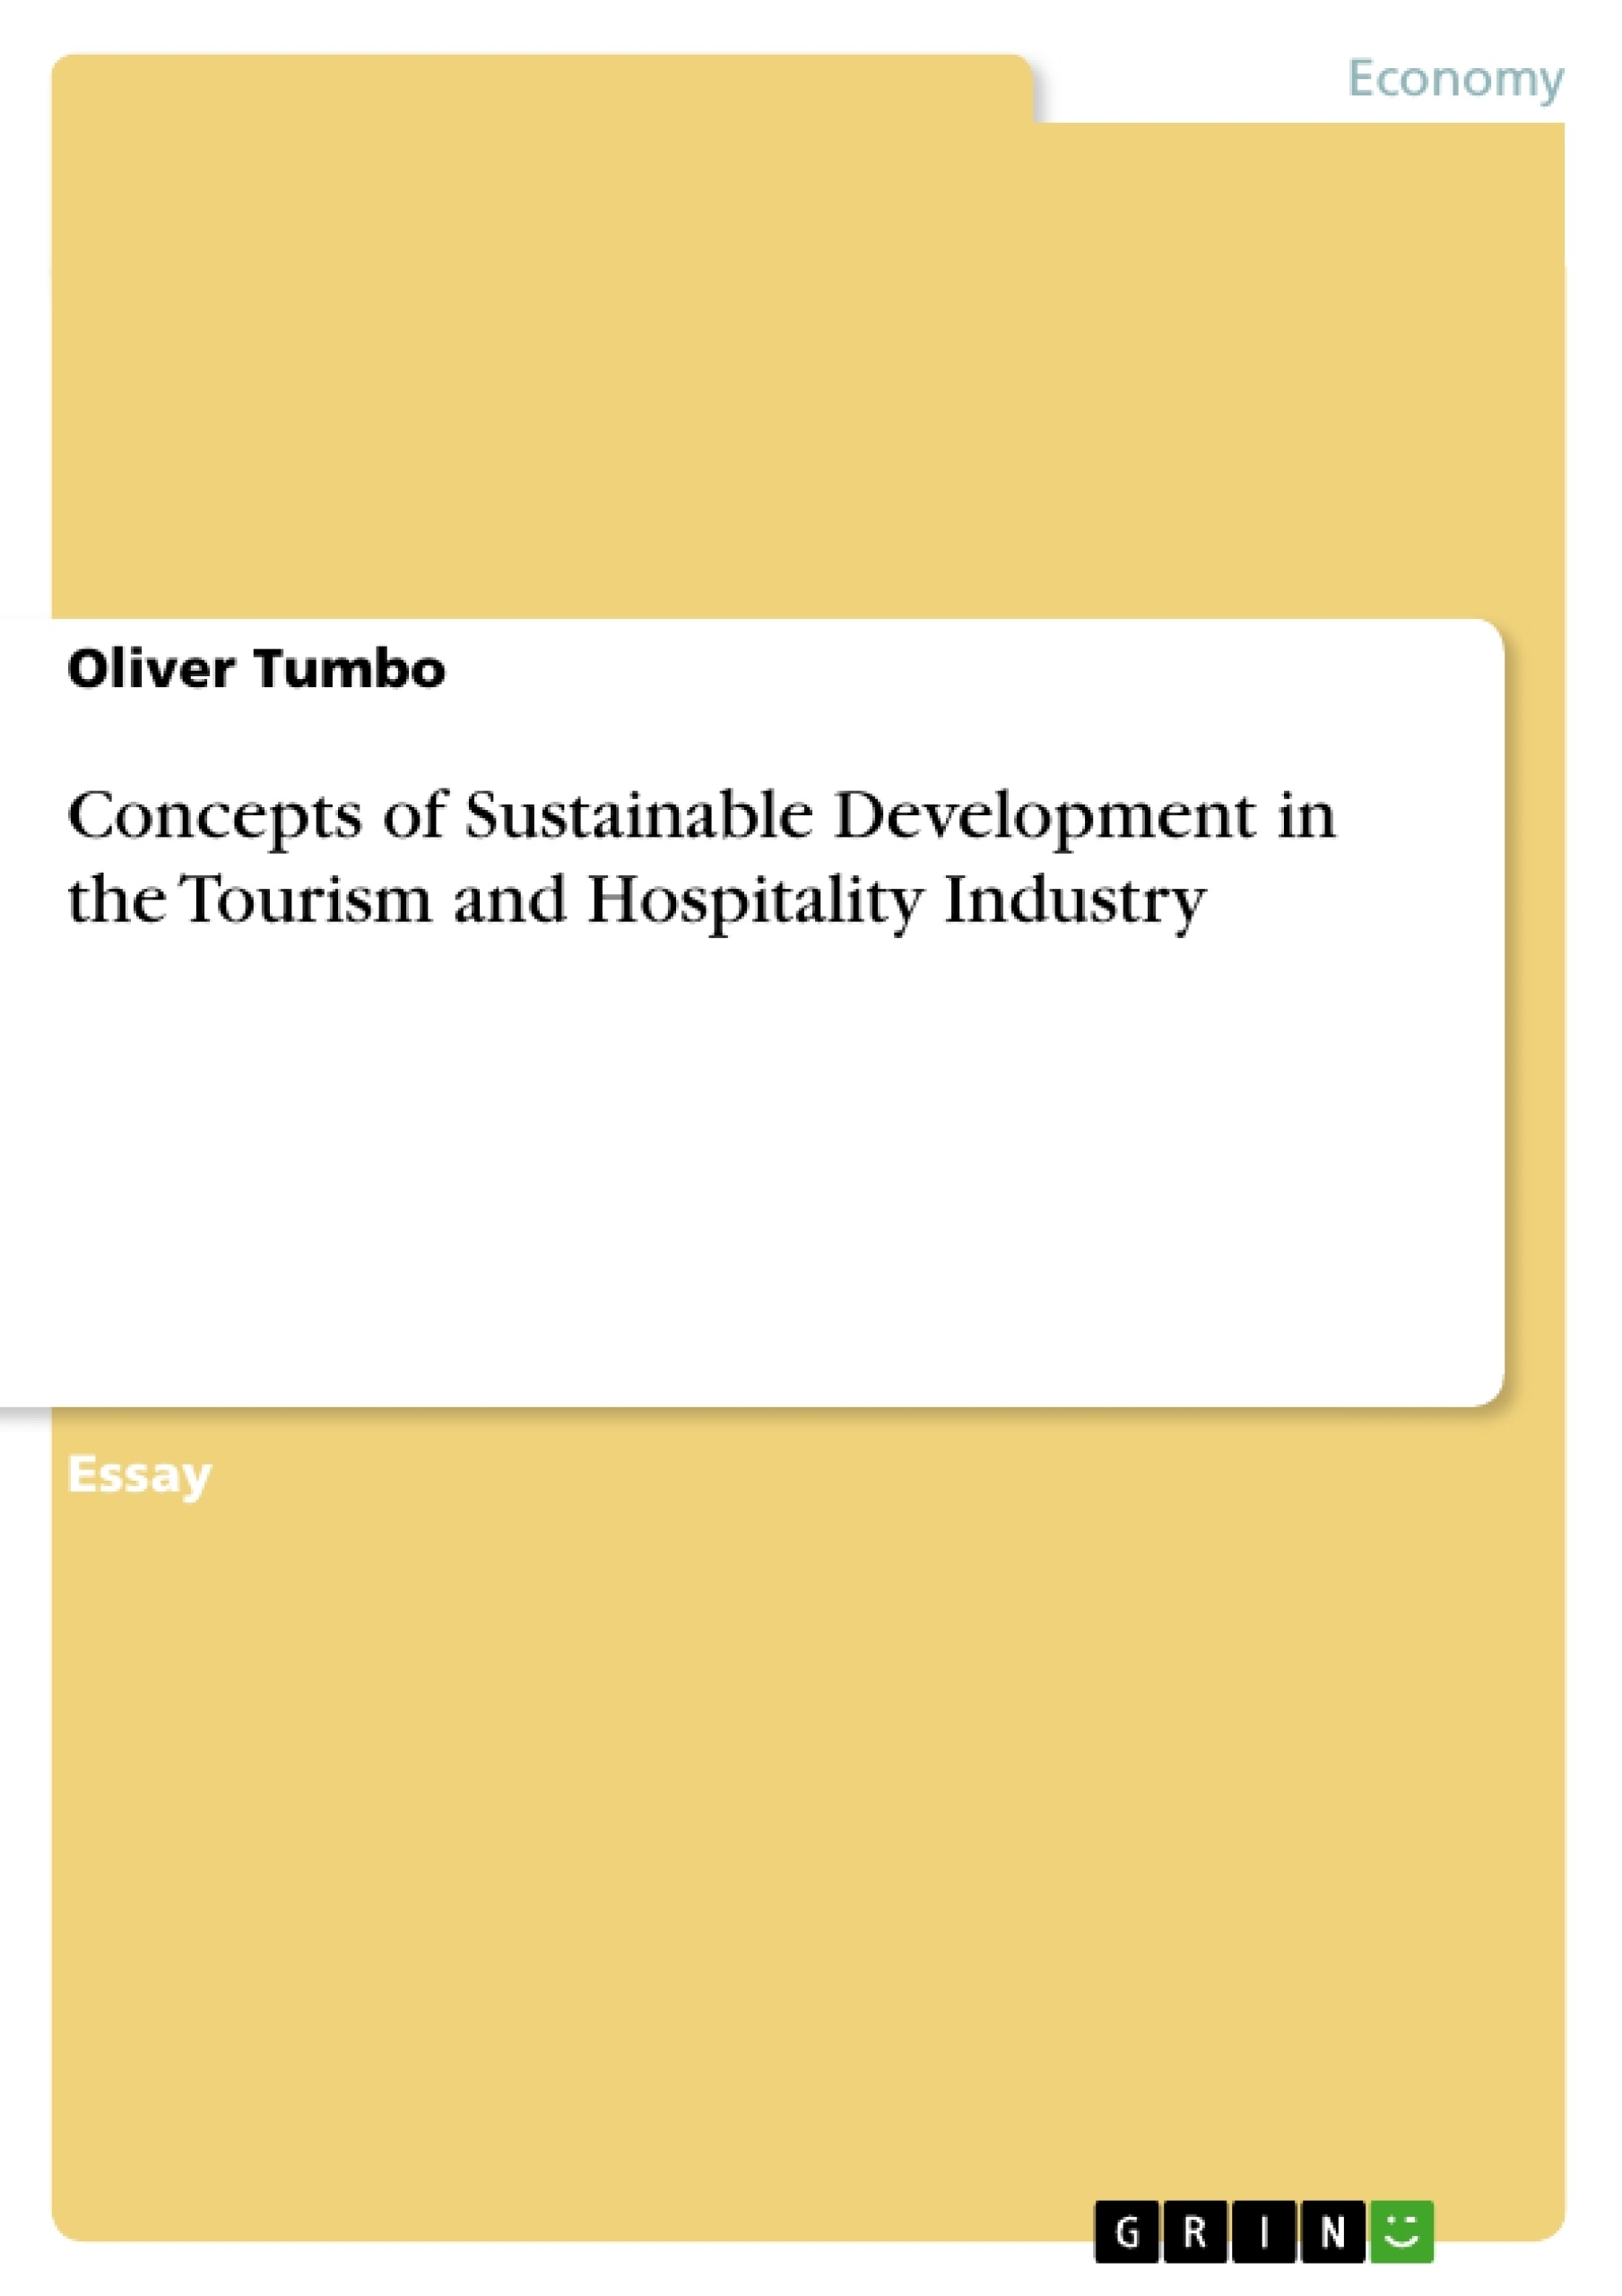 concepts of sustainable development in the tourism and hospitality concepts of sustainable development in the tourism and hospitality publish your master s thesis bachelor s thesis essay or term paper